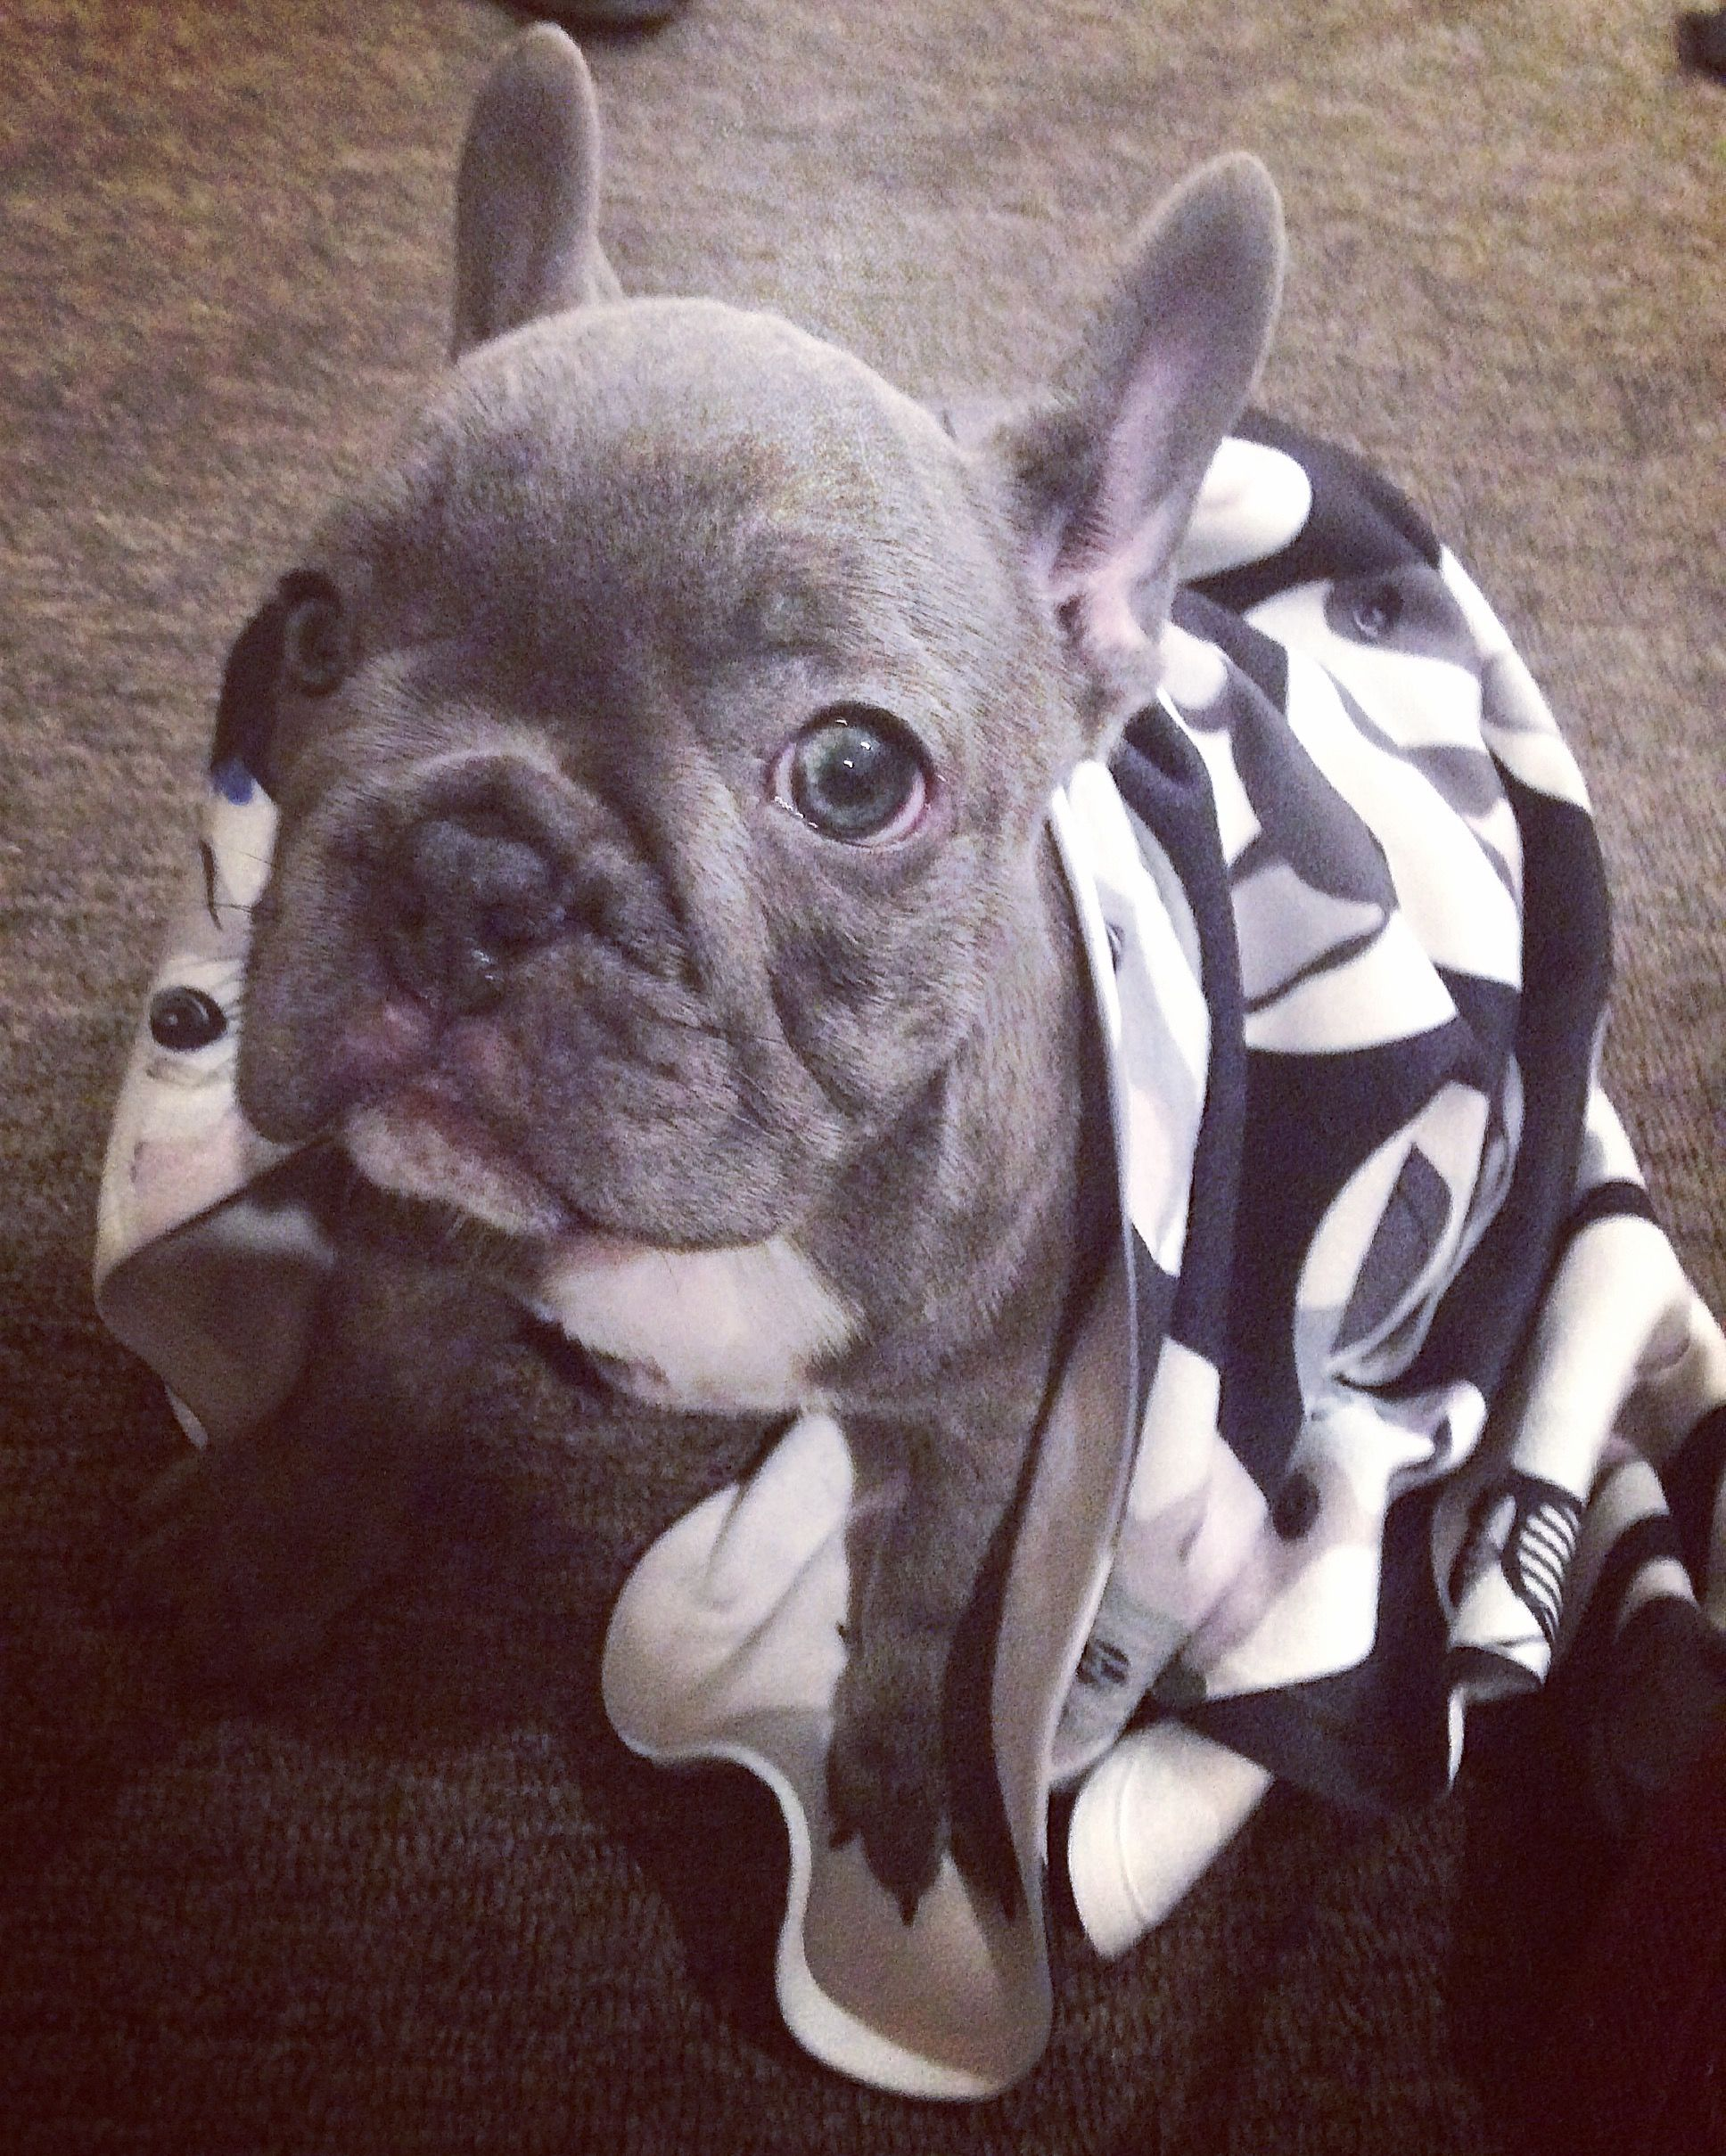 Blue French Bulldog Puppy Brindle French Bulldog French Bulldog White French Bulldog Puppies